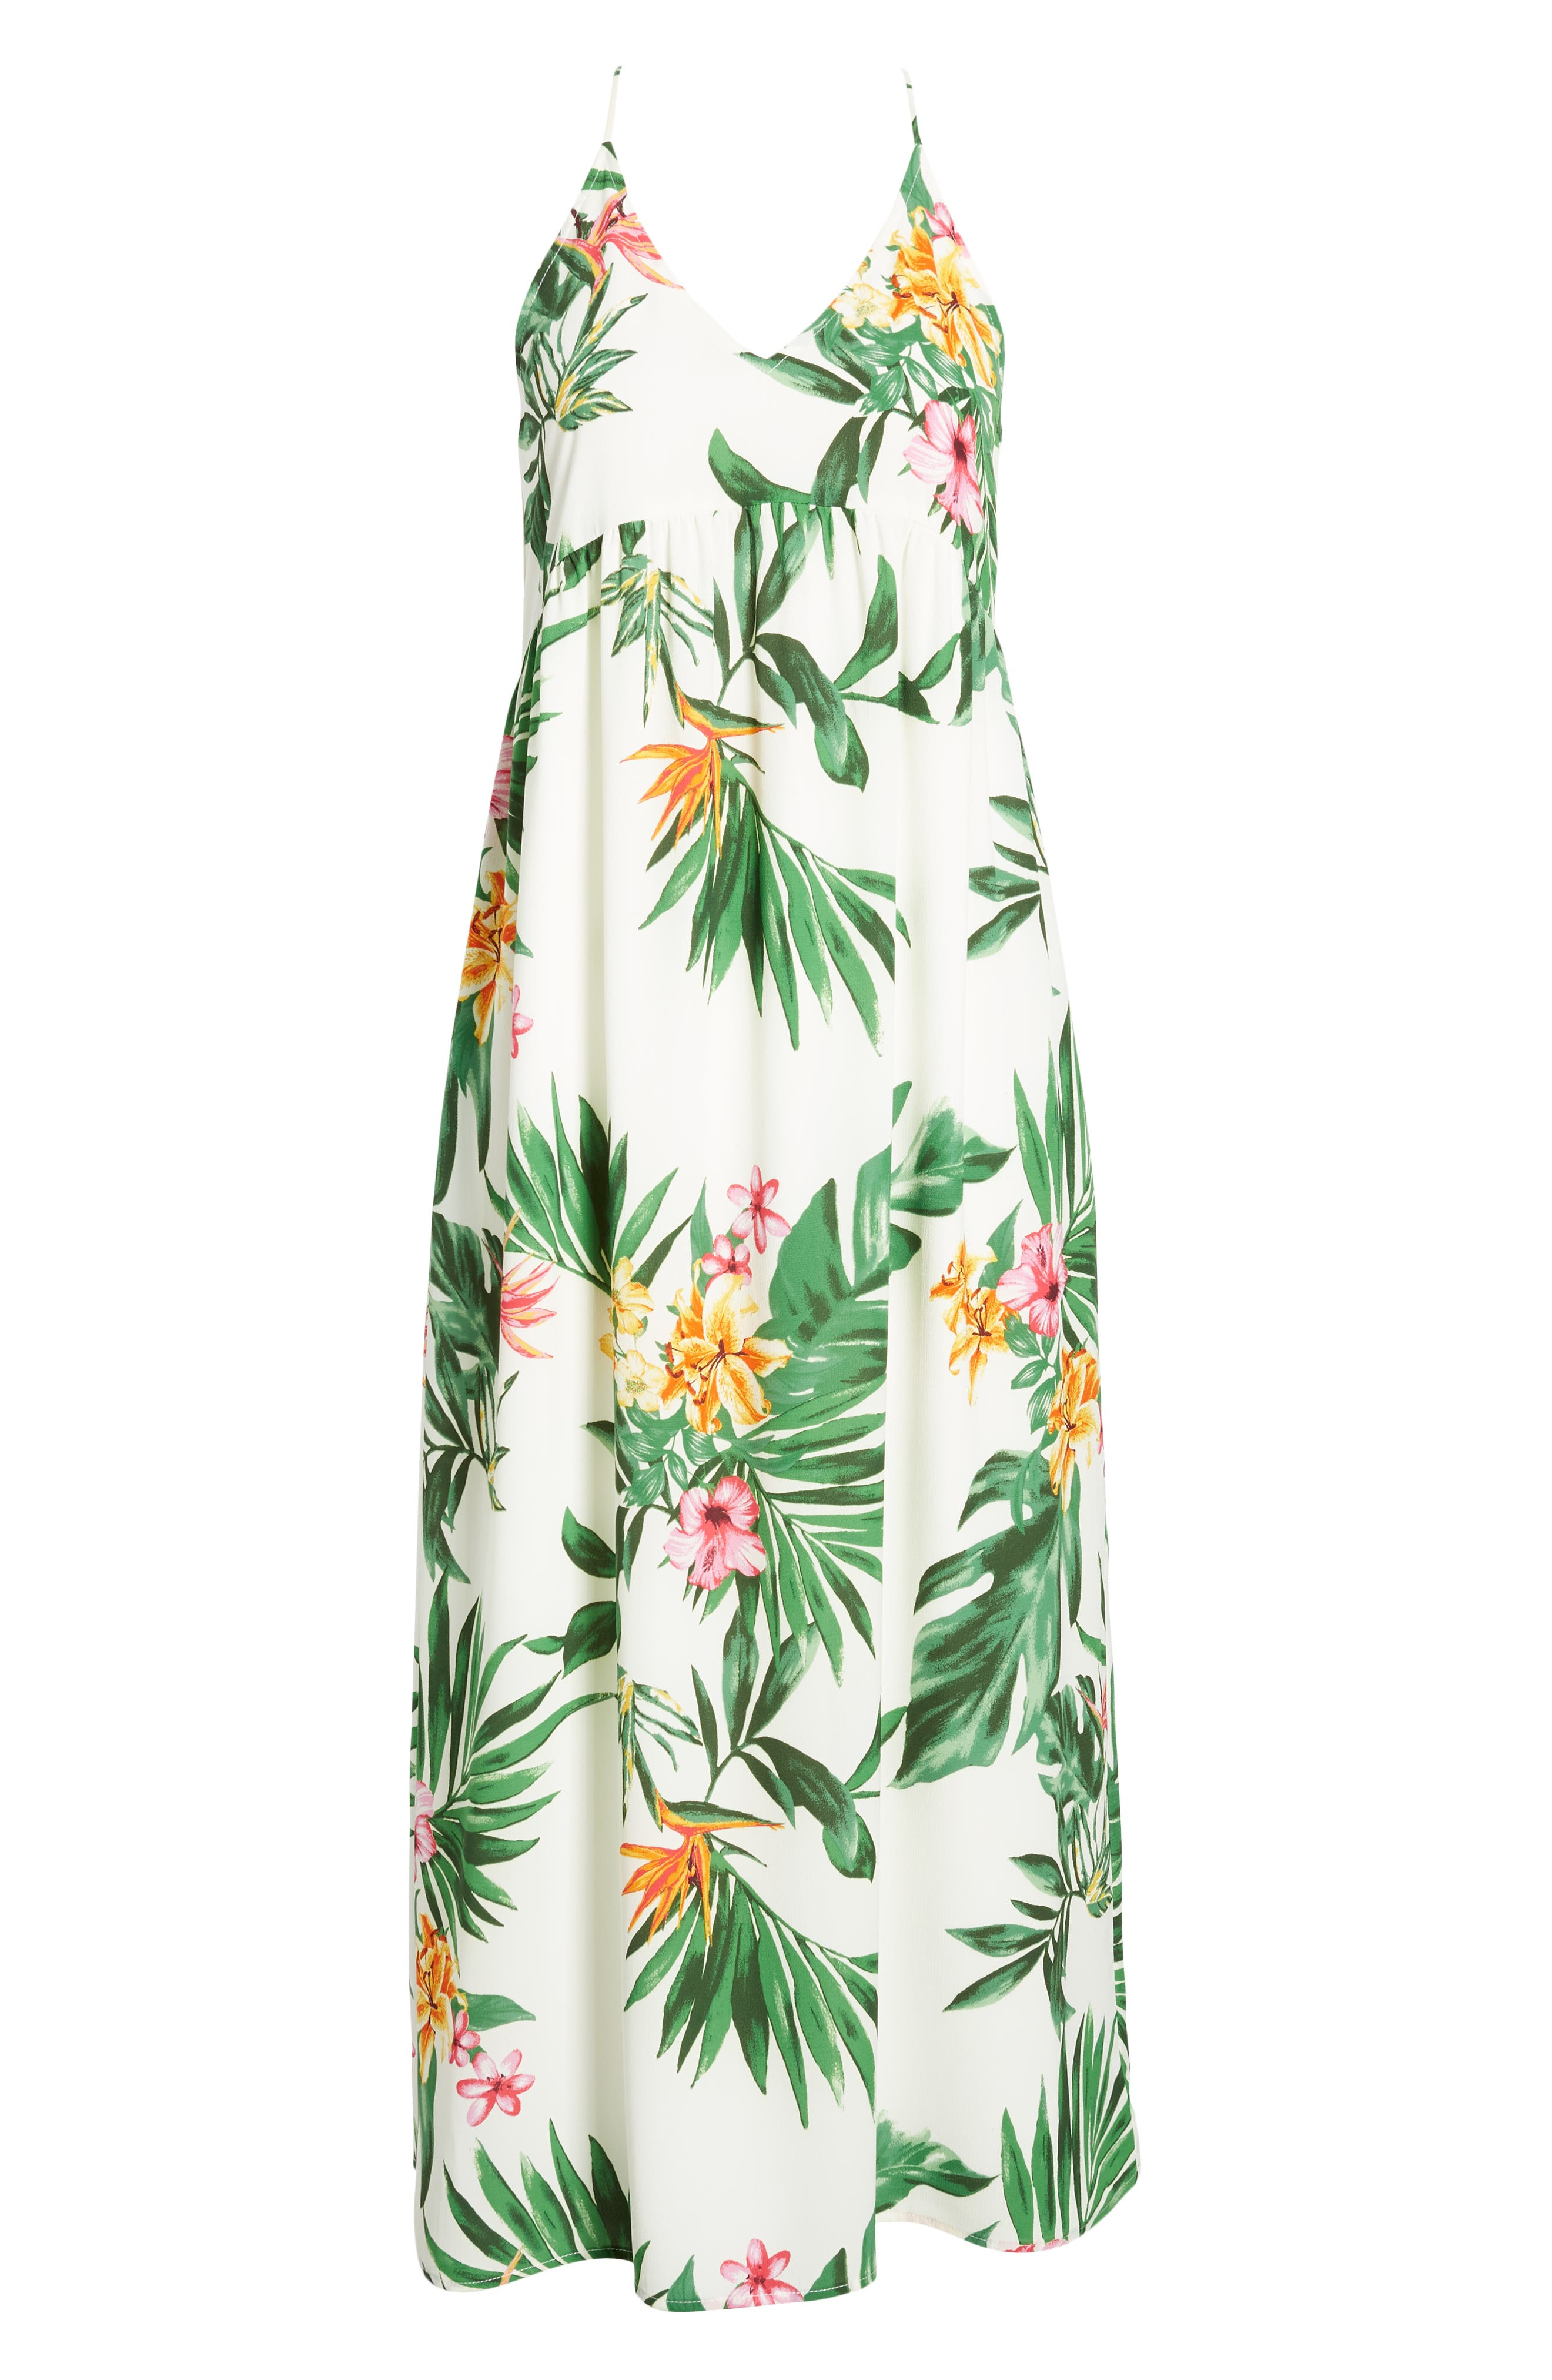 x Hi Sugarplum! Palm Springs Festival Maxi Dress,                             Alternate thumbnail 6, color,                             150